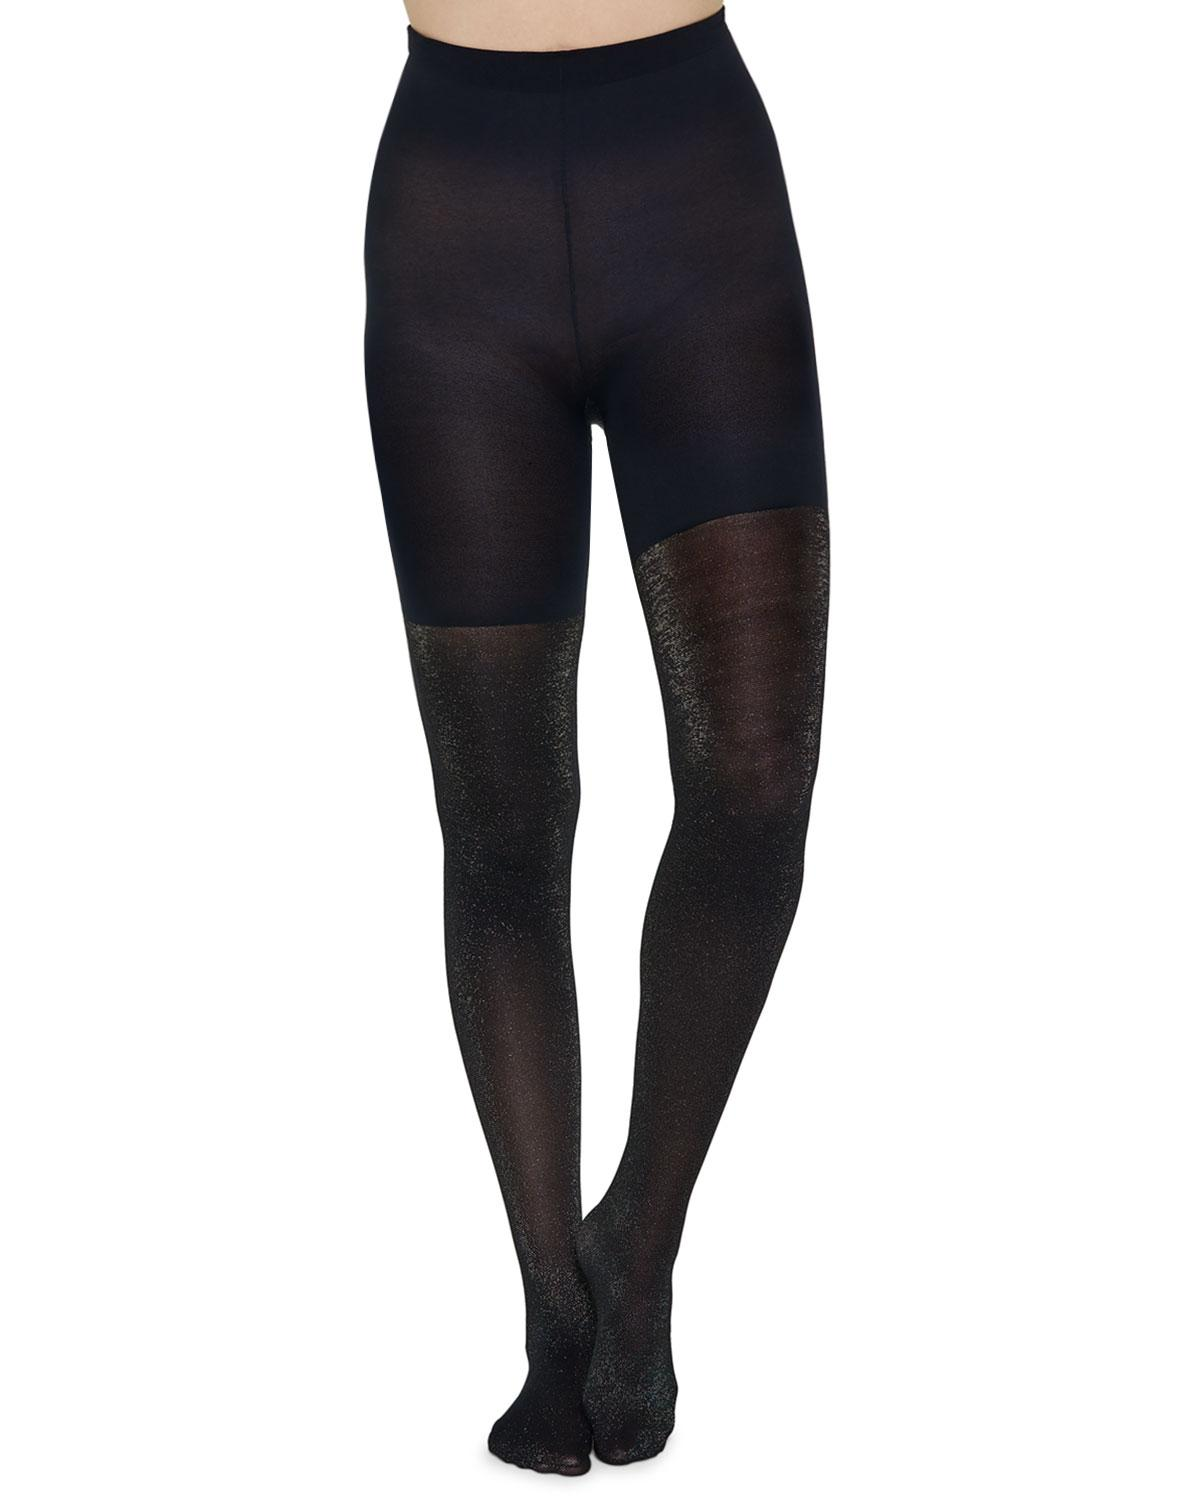 a639fcf273 Lyst - Spanx Mid-thigh Shaper Metallic Shimmer Tights in Black